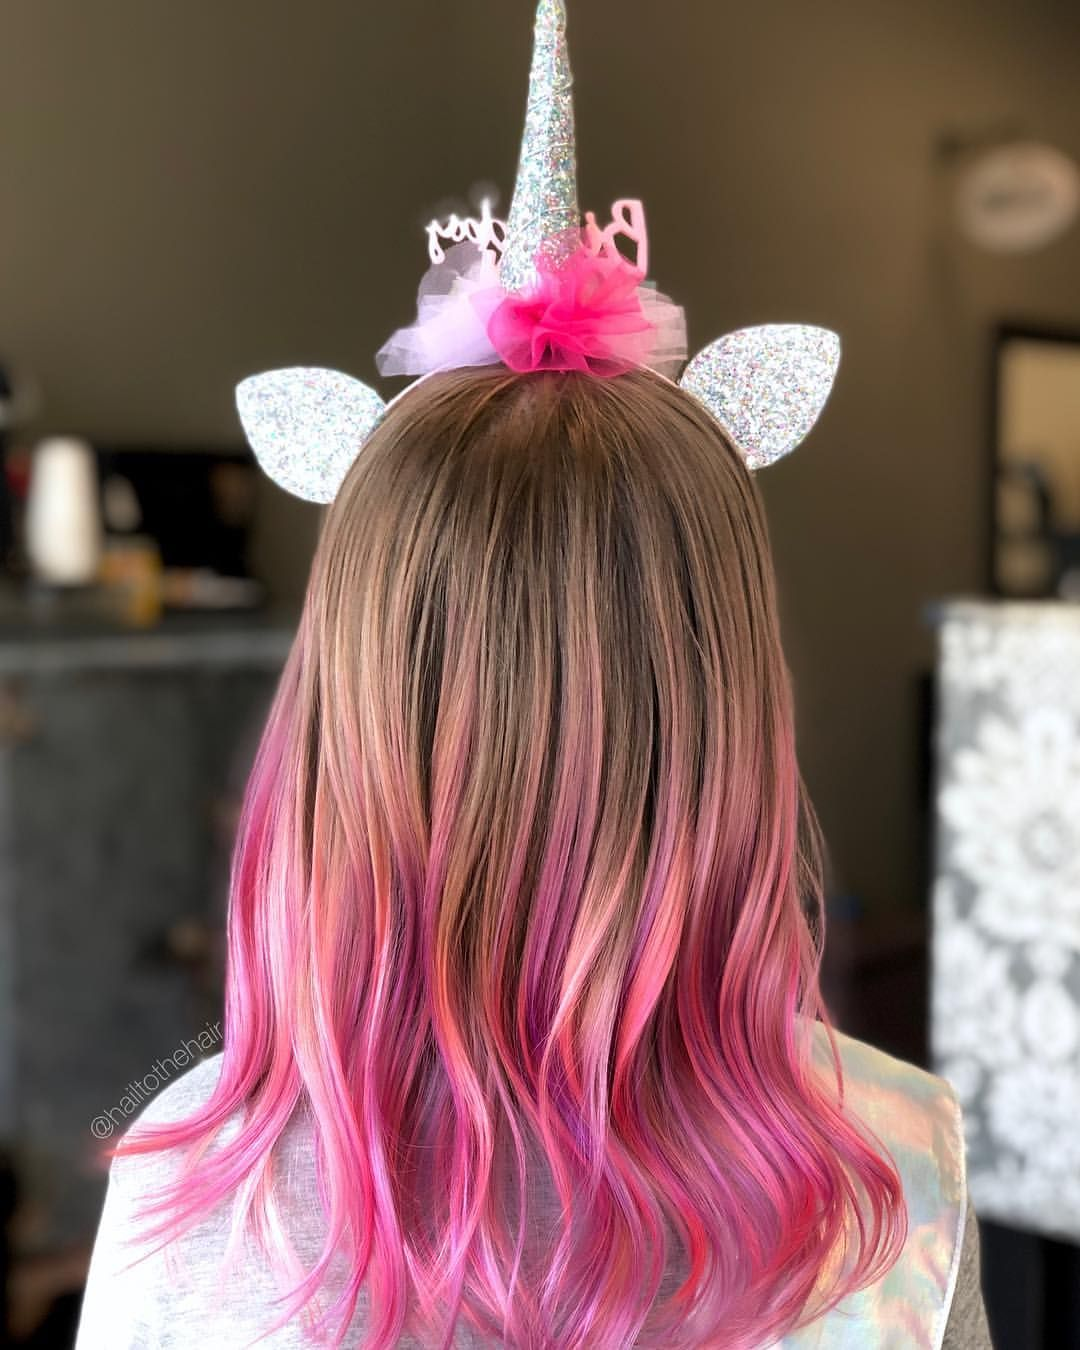 The Cutest Little Girl Whose Favorite Color Is Pink Pink Hair Hair Hair Styles